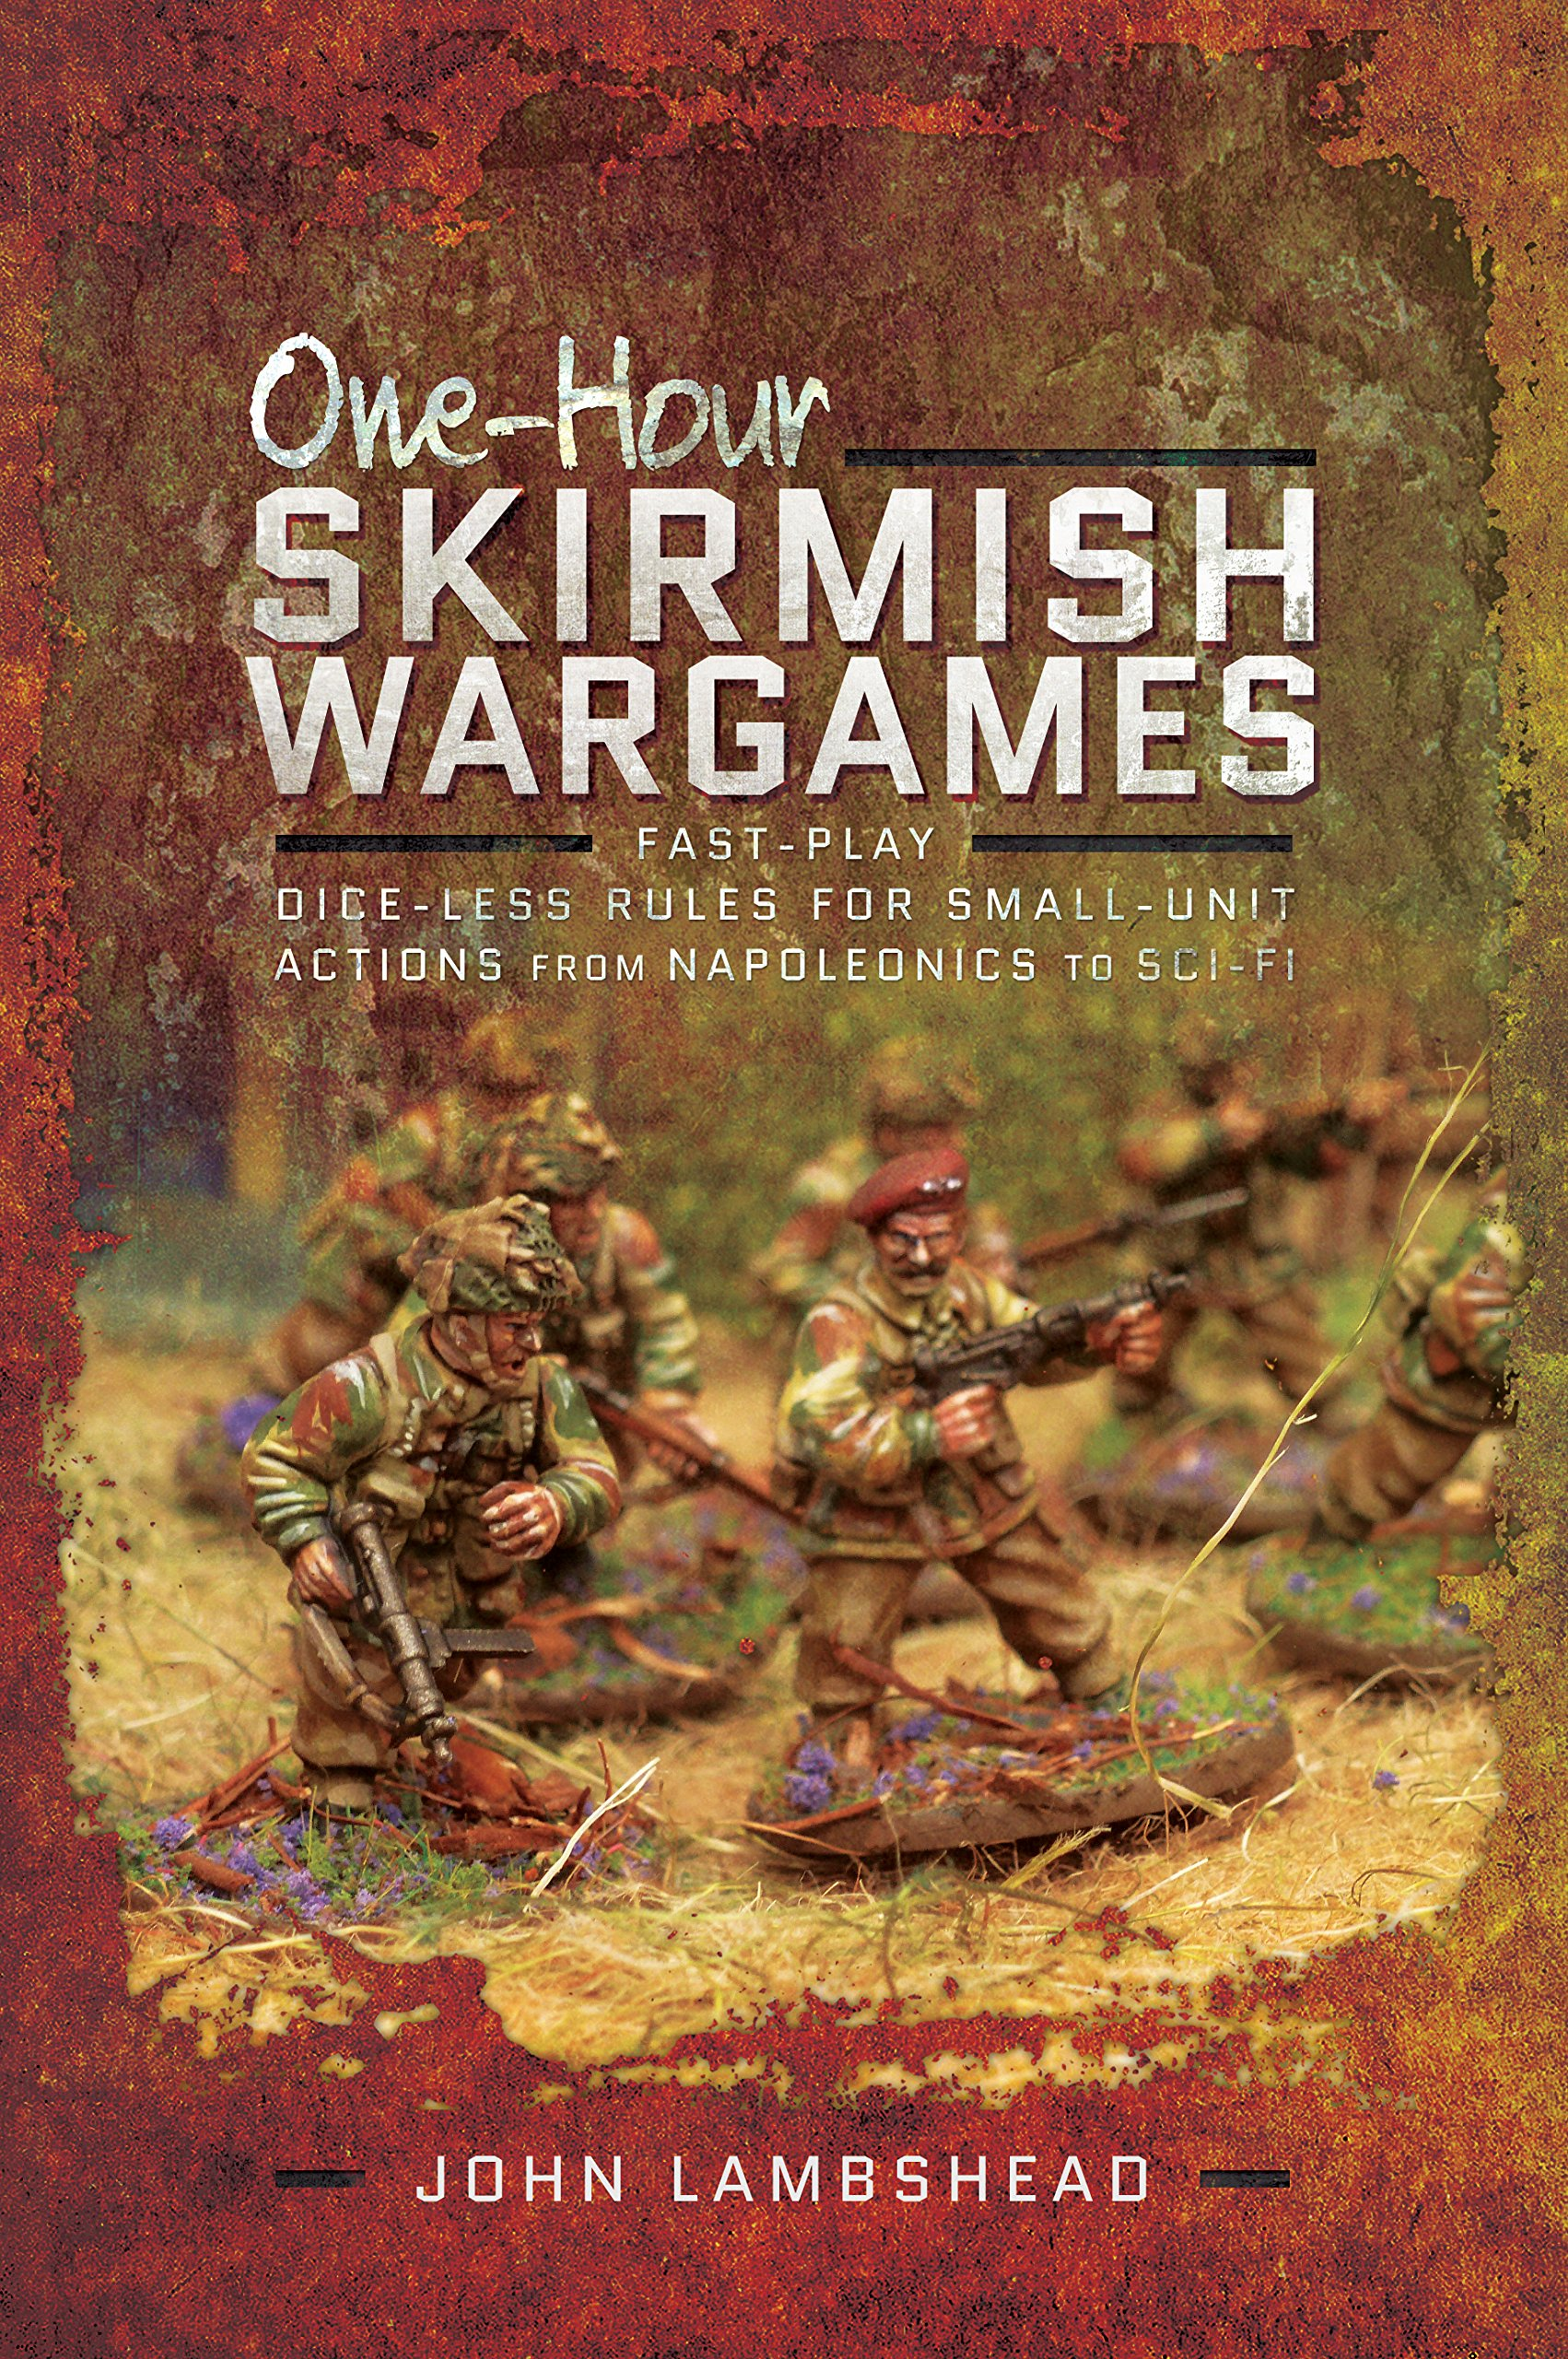 One-hour Skirmish Wargames: Fast-play Dice-less Rules for